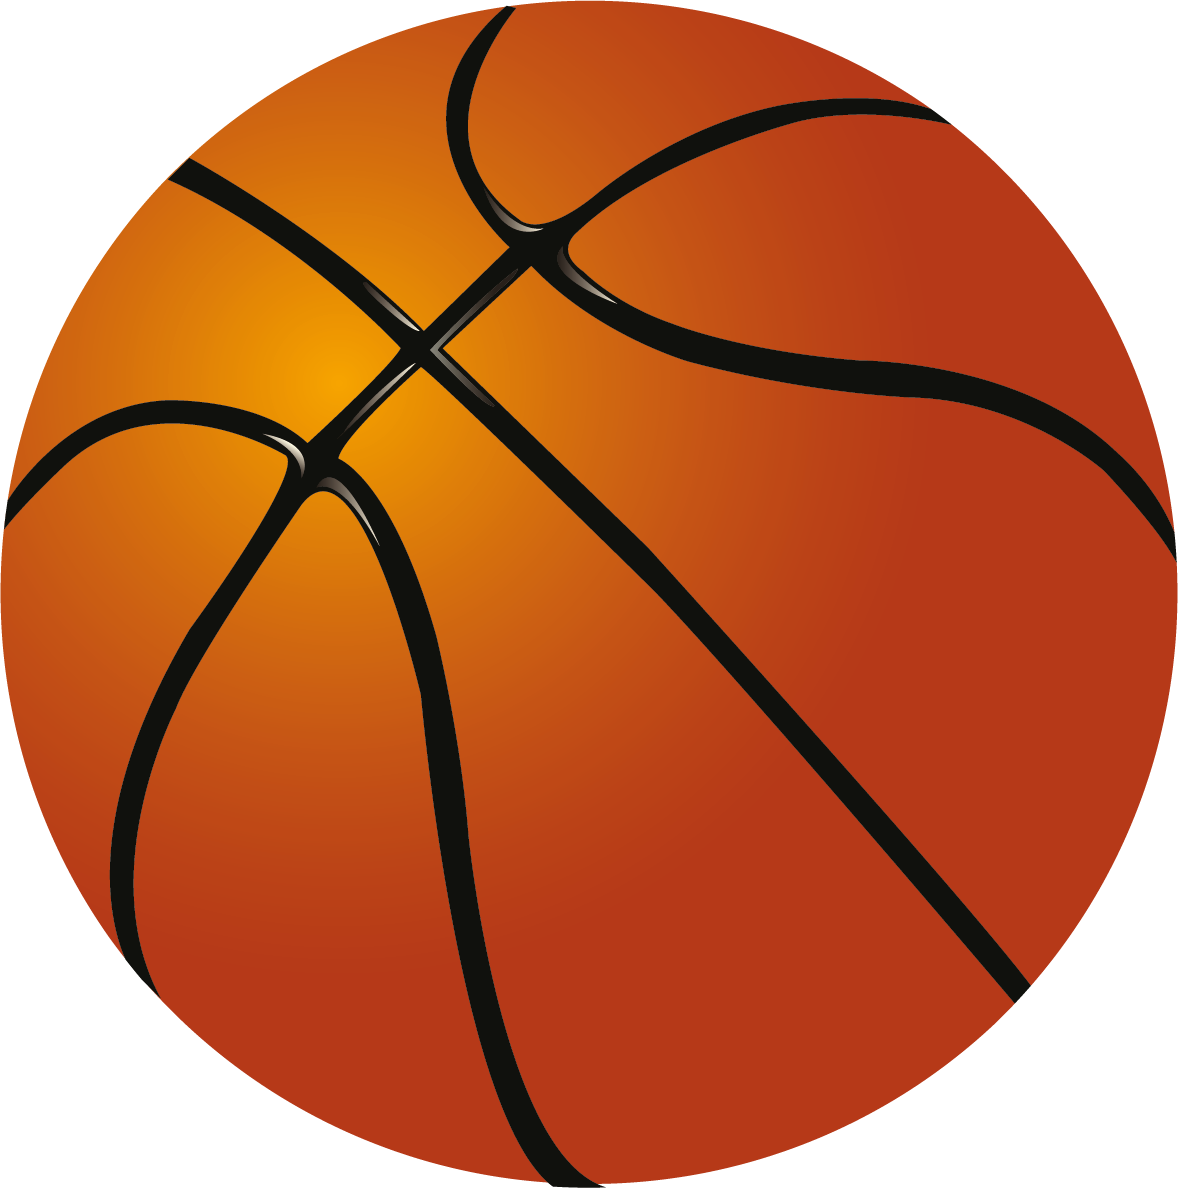 Basketball clipart with word image royalty free ball - Buscar con Google | Niños | Pinterest | Basketball clipart ... image royalty free